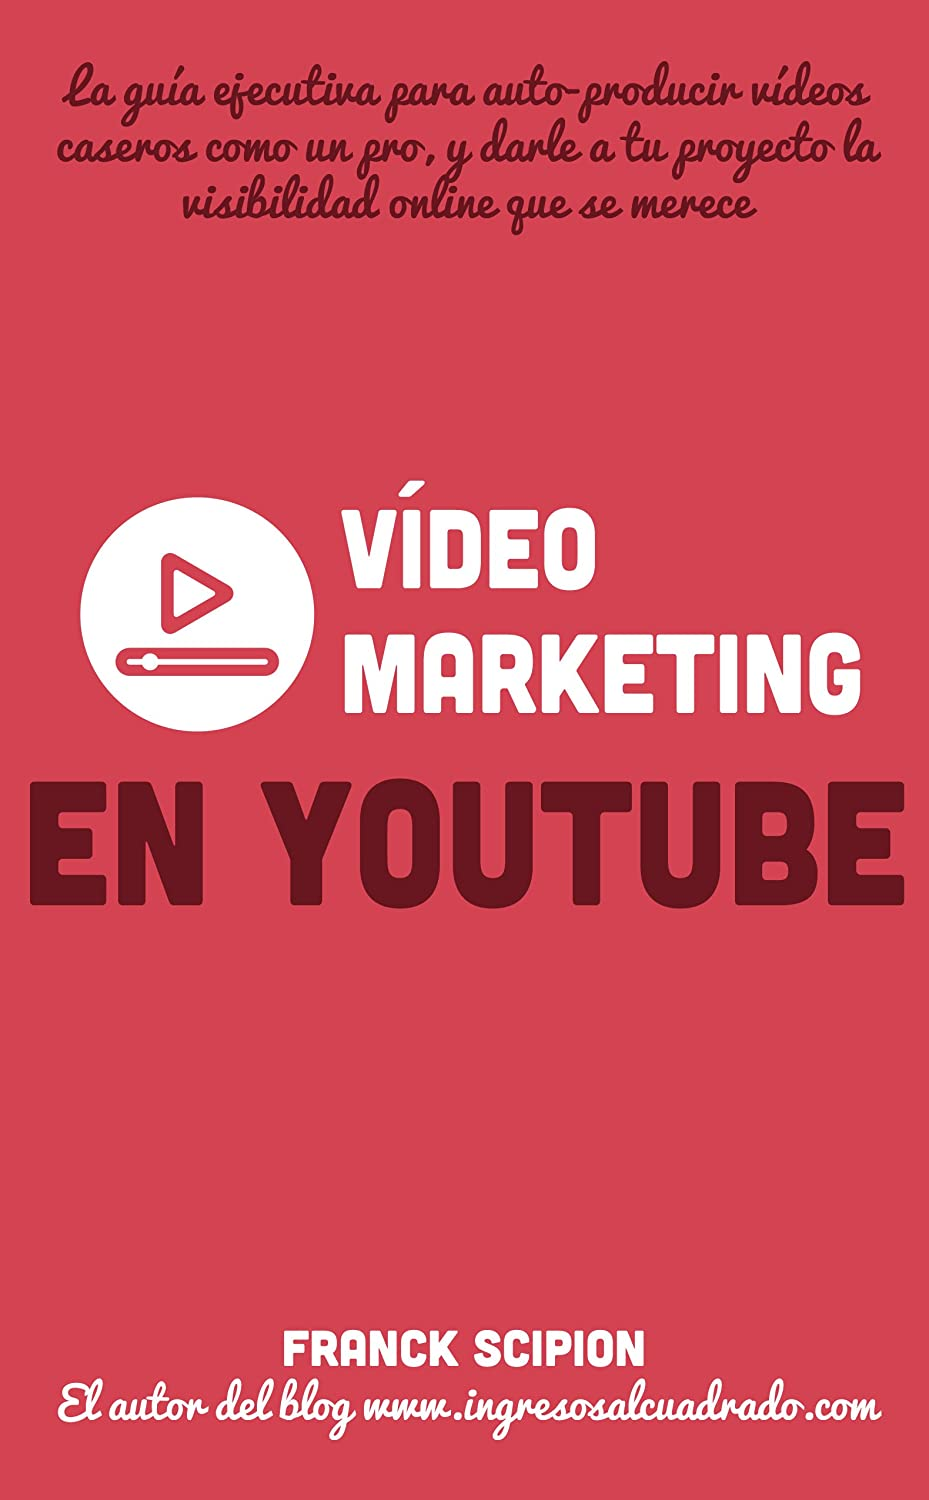 Vídeo Marketing en YouTube (Guías ejecutivas